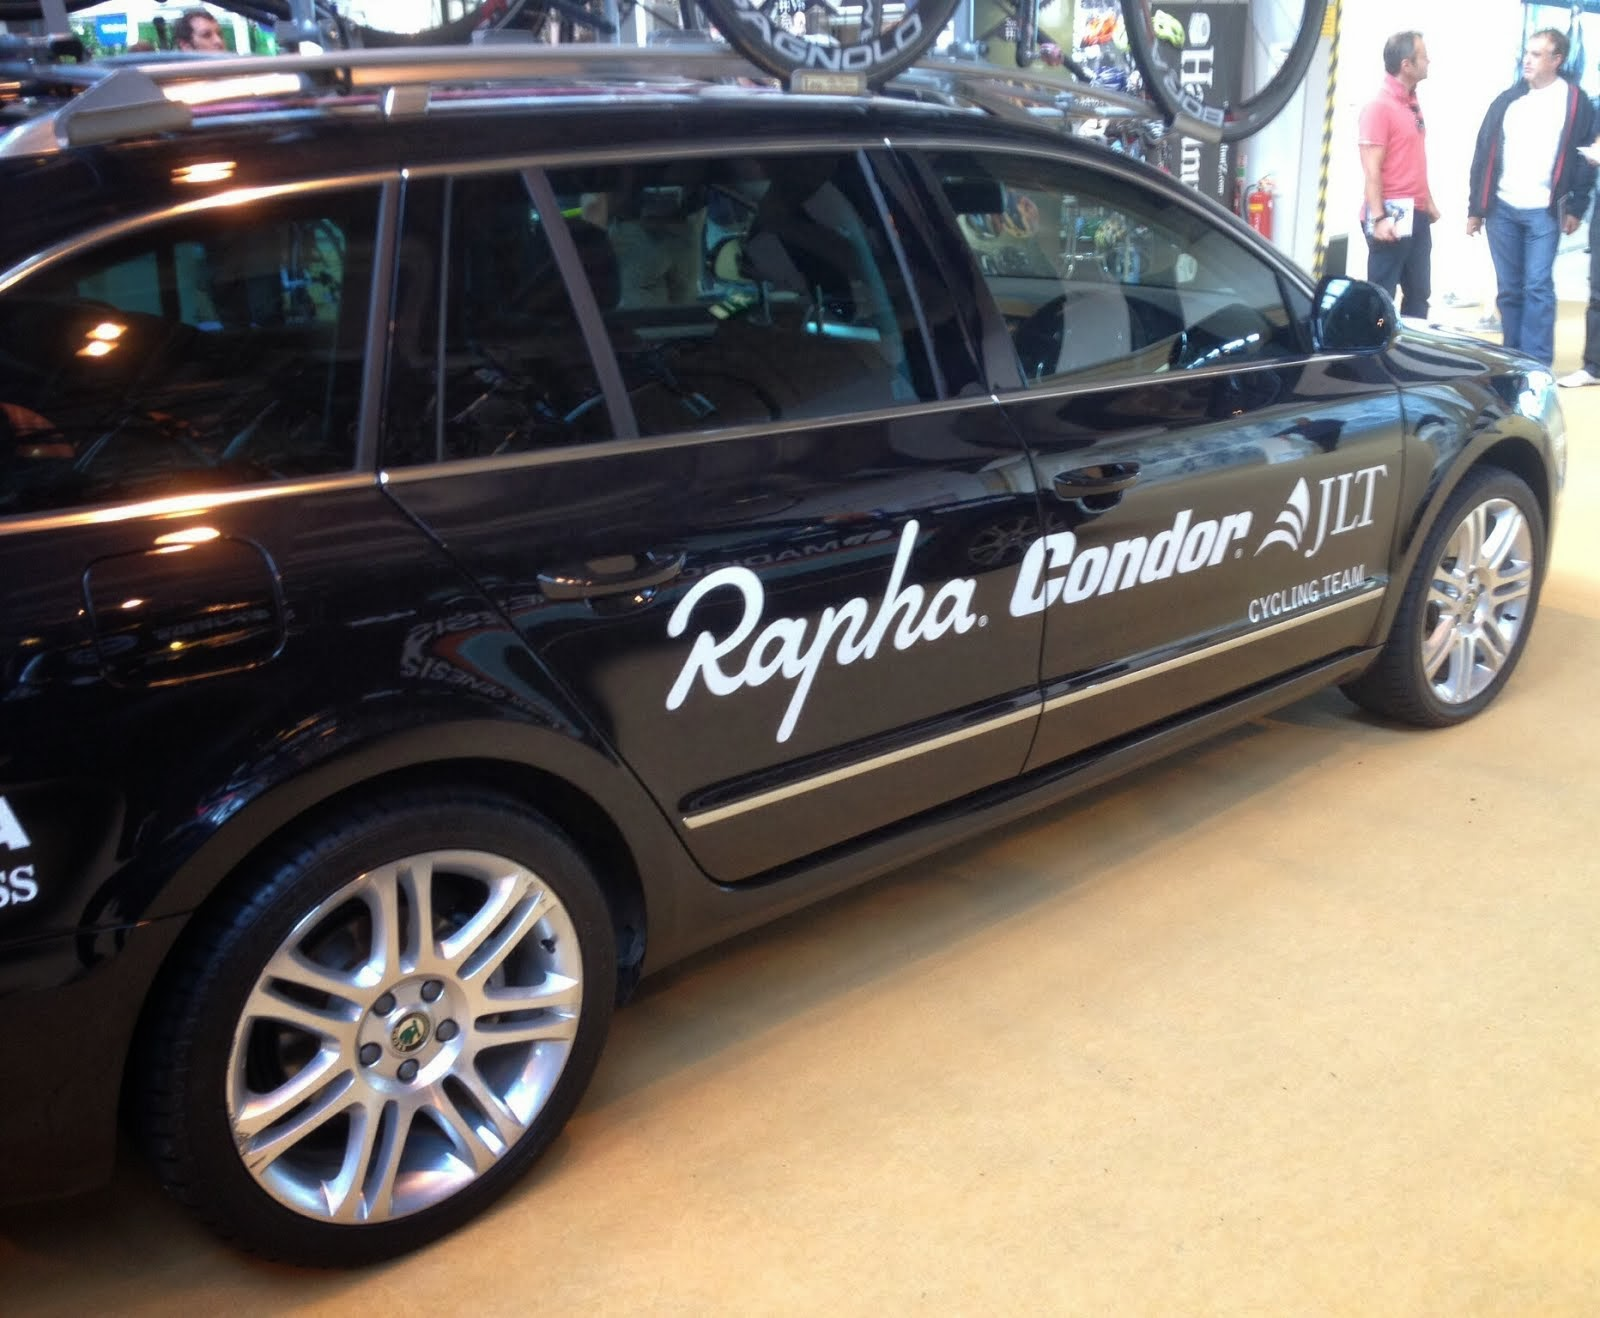 Rapha and Condor